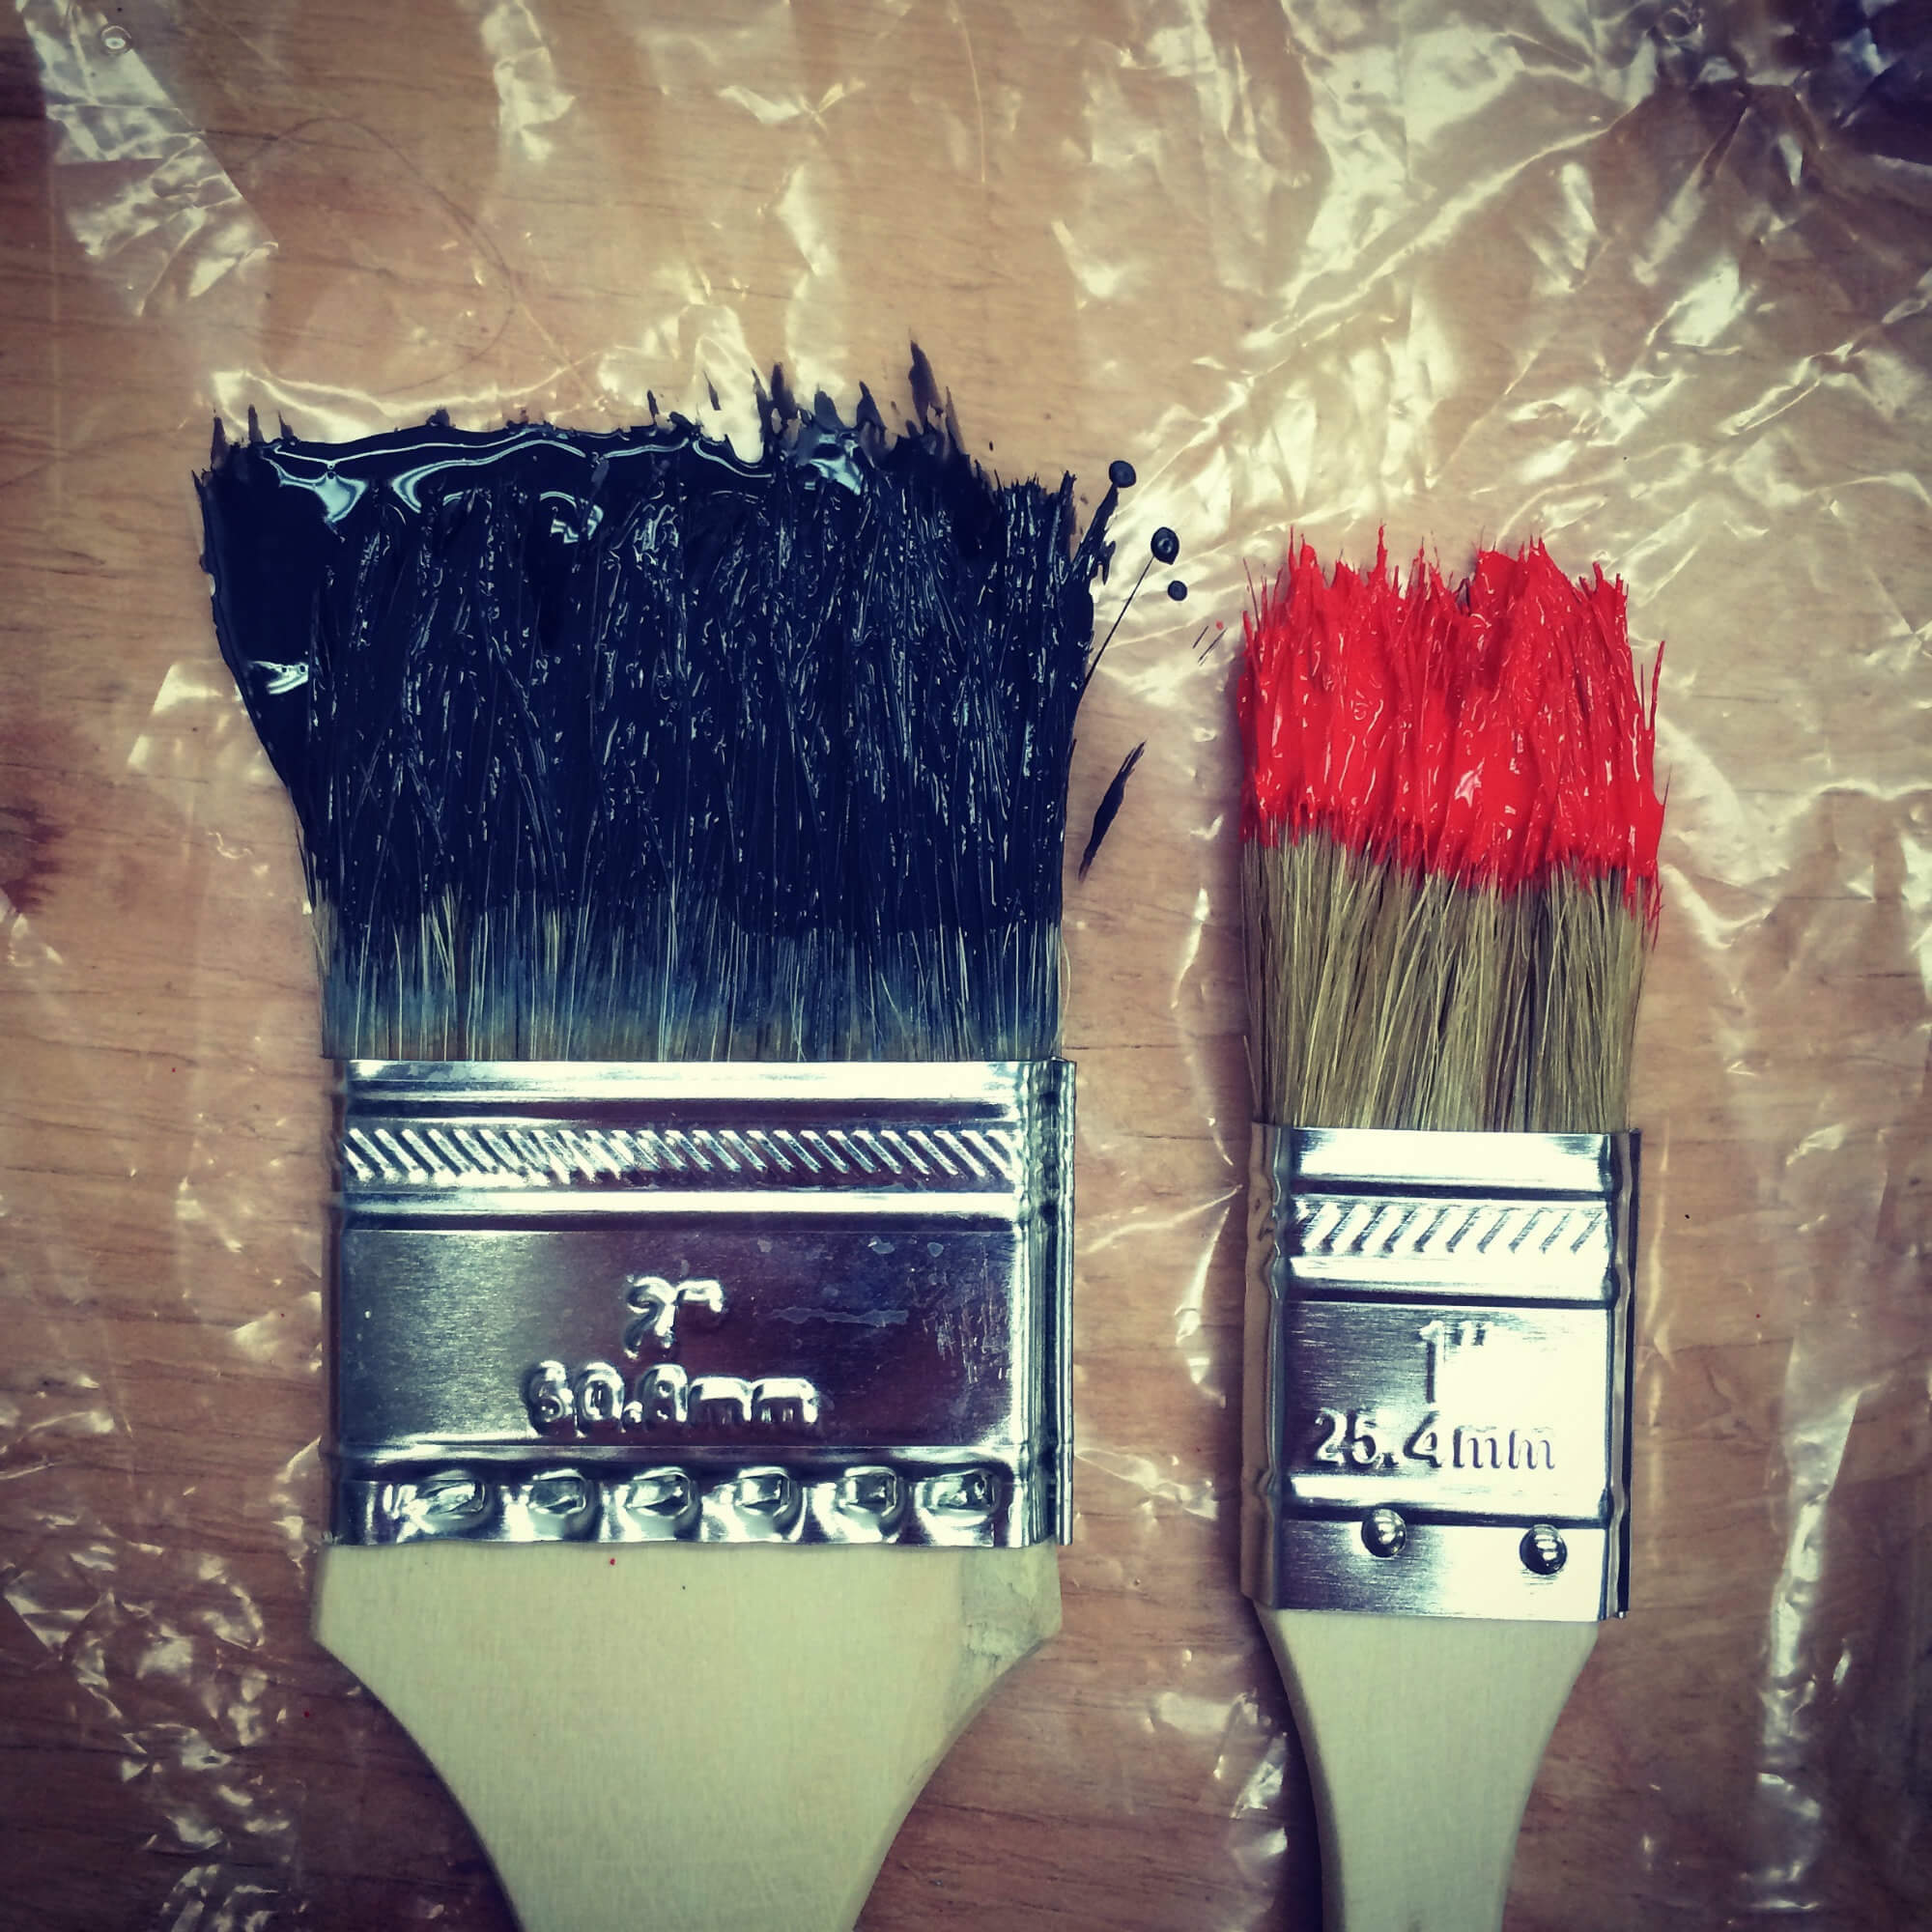 paint brushes of different sizes and colours